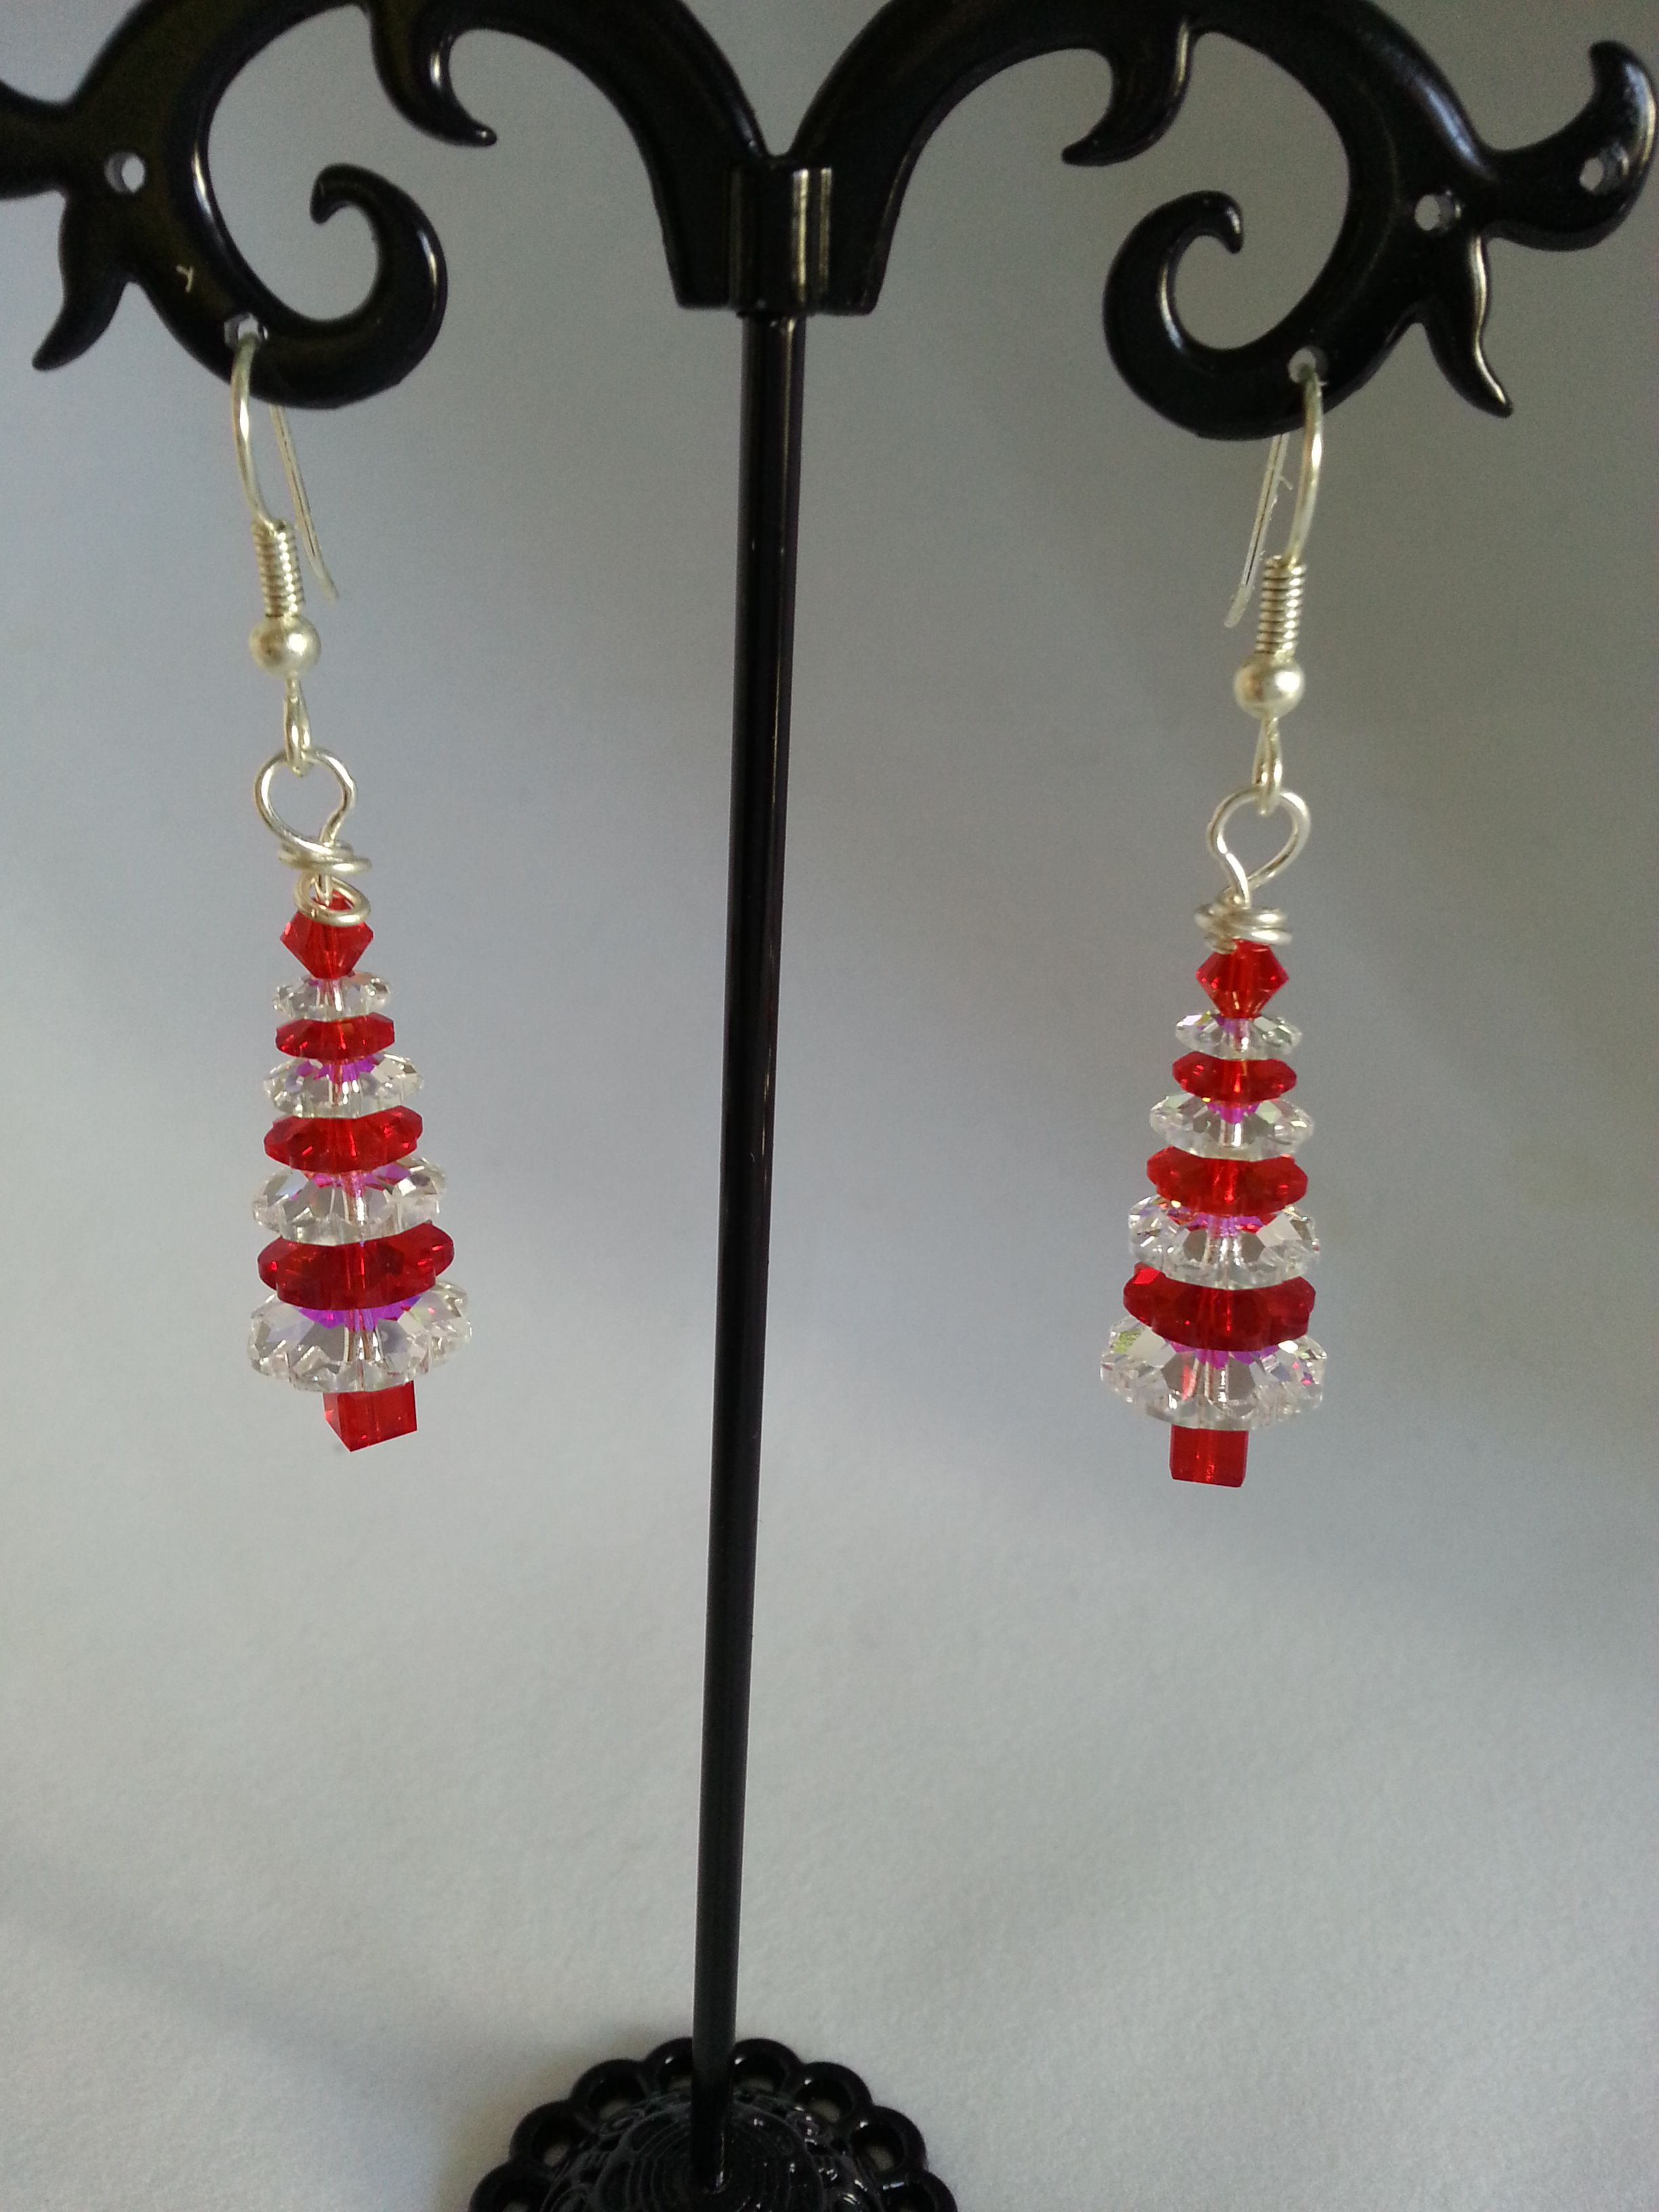 Genuine Swarovski crystal Christmas tree earrings - 7 tier red and clear